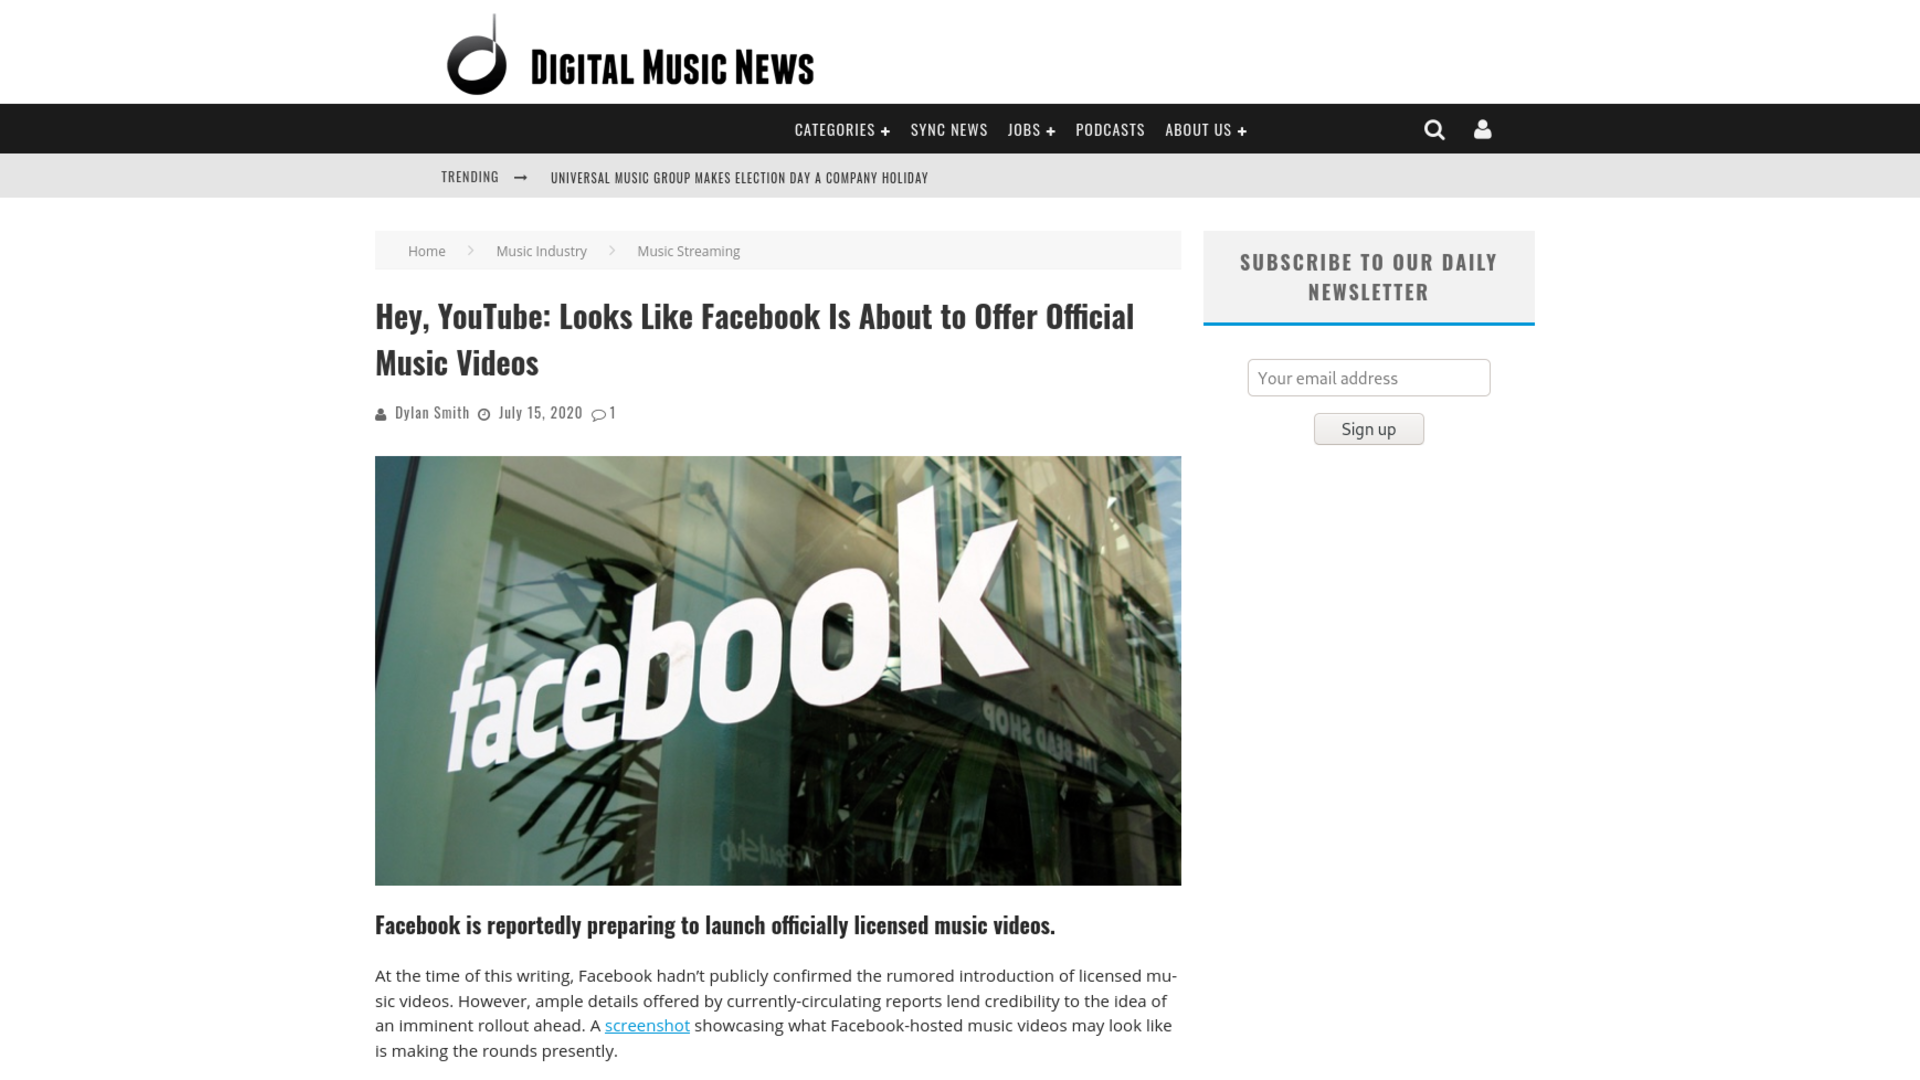 Fairness Rocks News Hey, YouTube: Looks Like Facebook Is About to Offer Official Music Videos